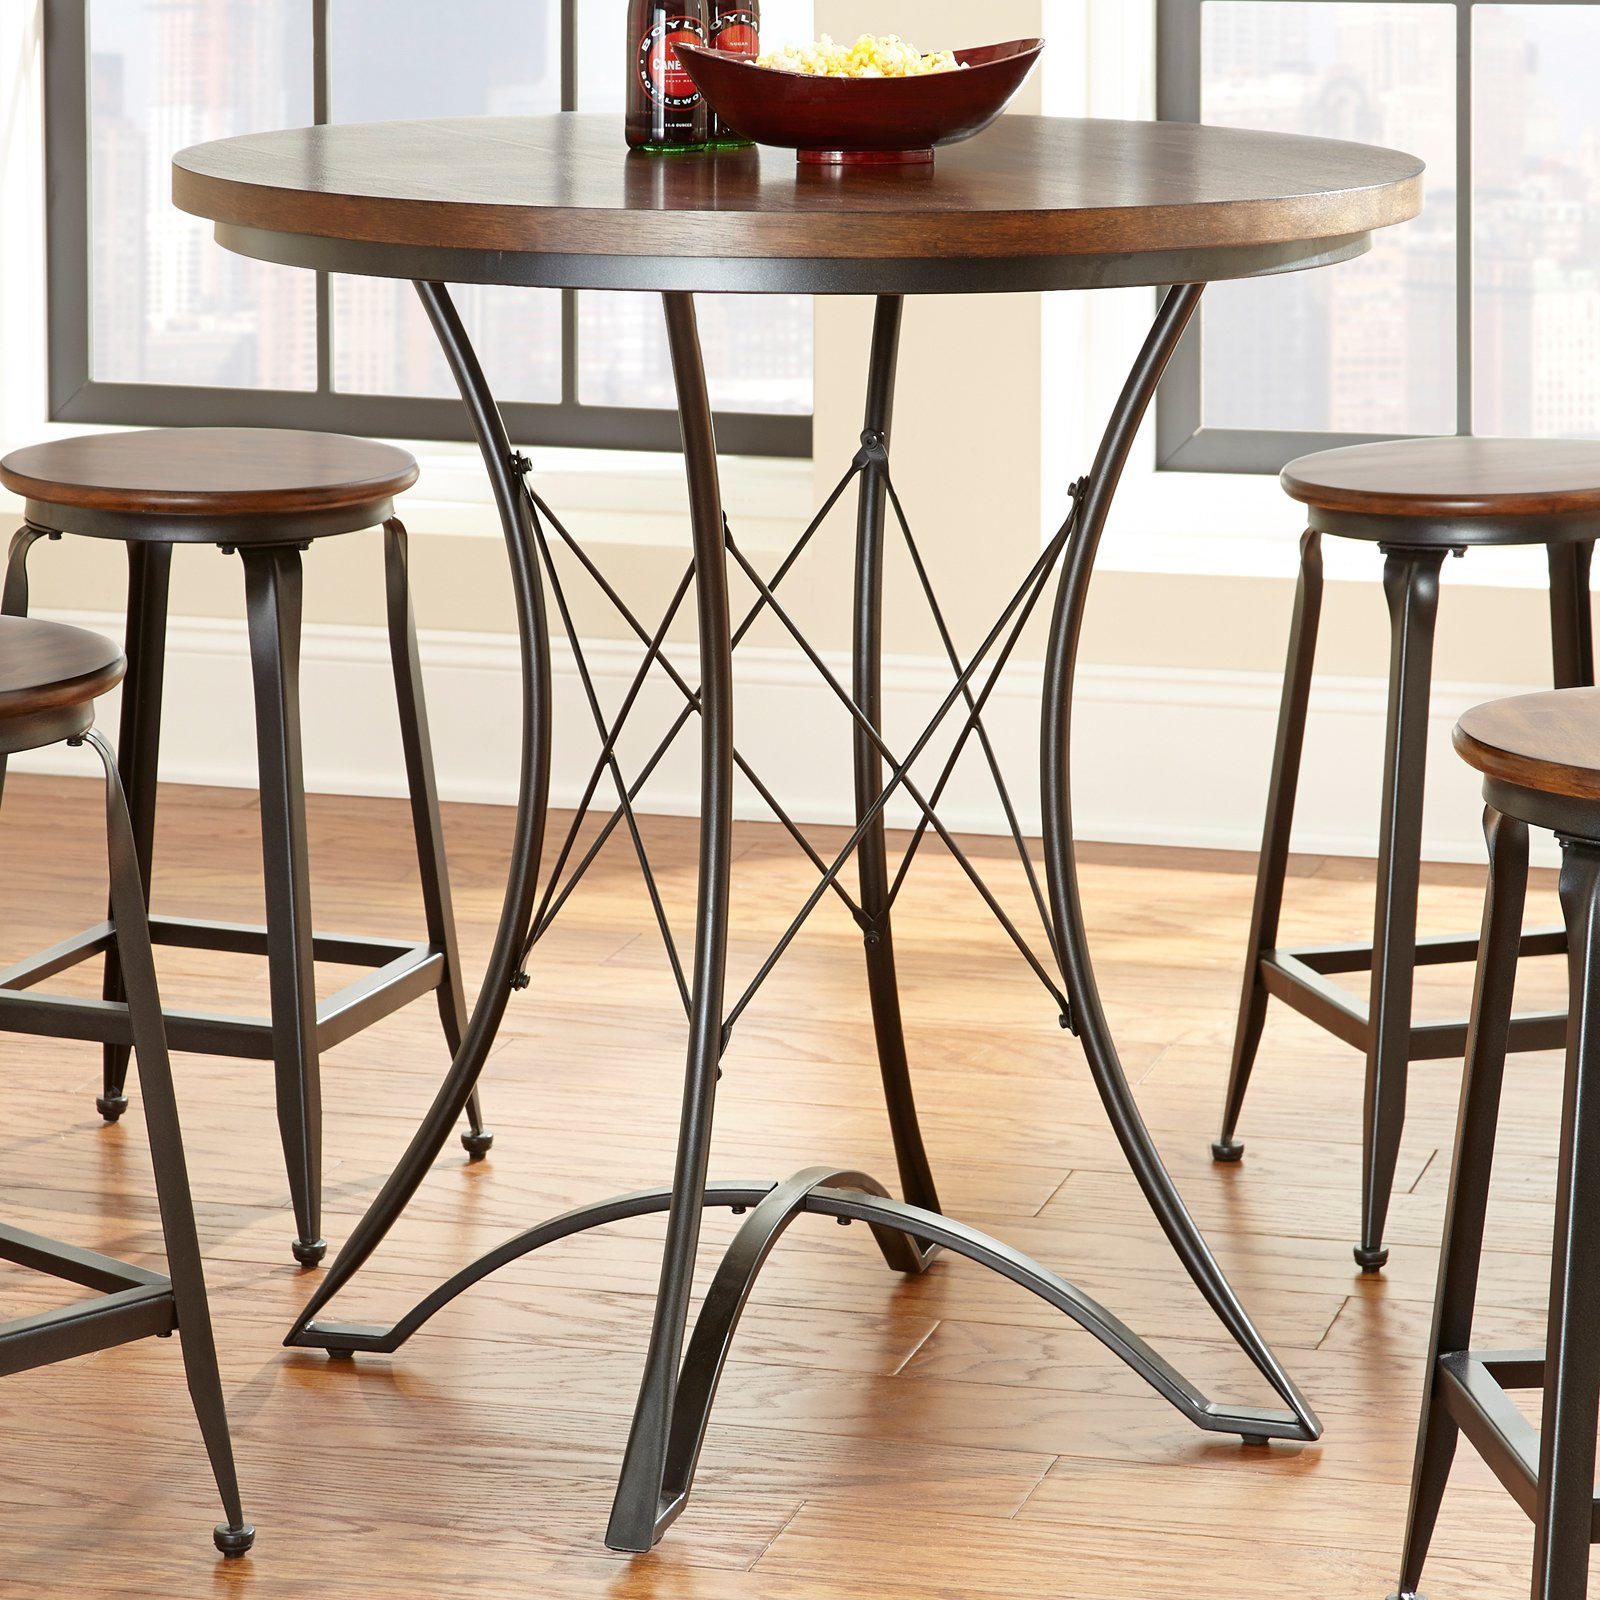 Steve Silver Adele Round Counter Height Dining Table by Steve Silver Company